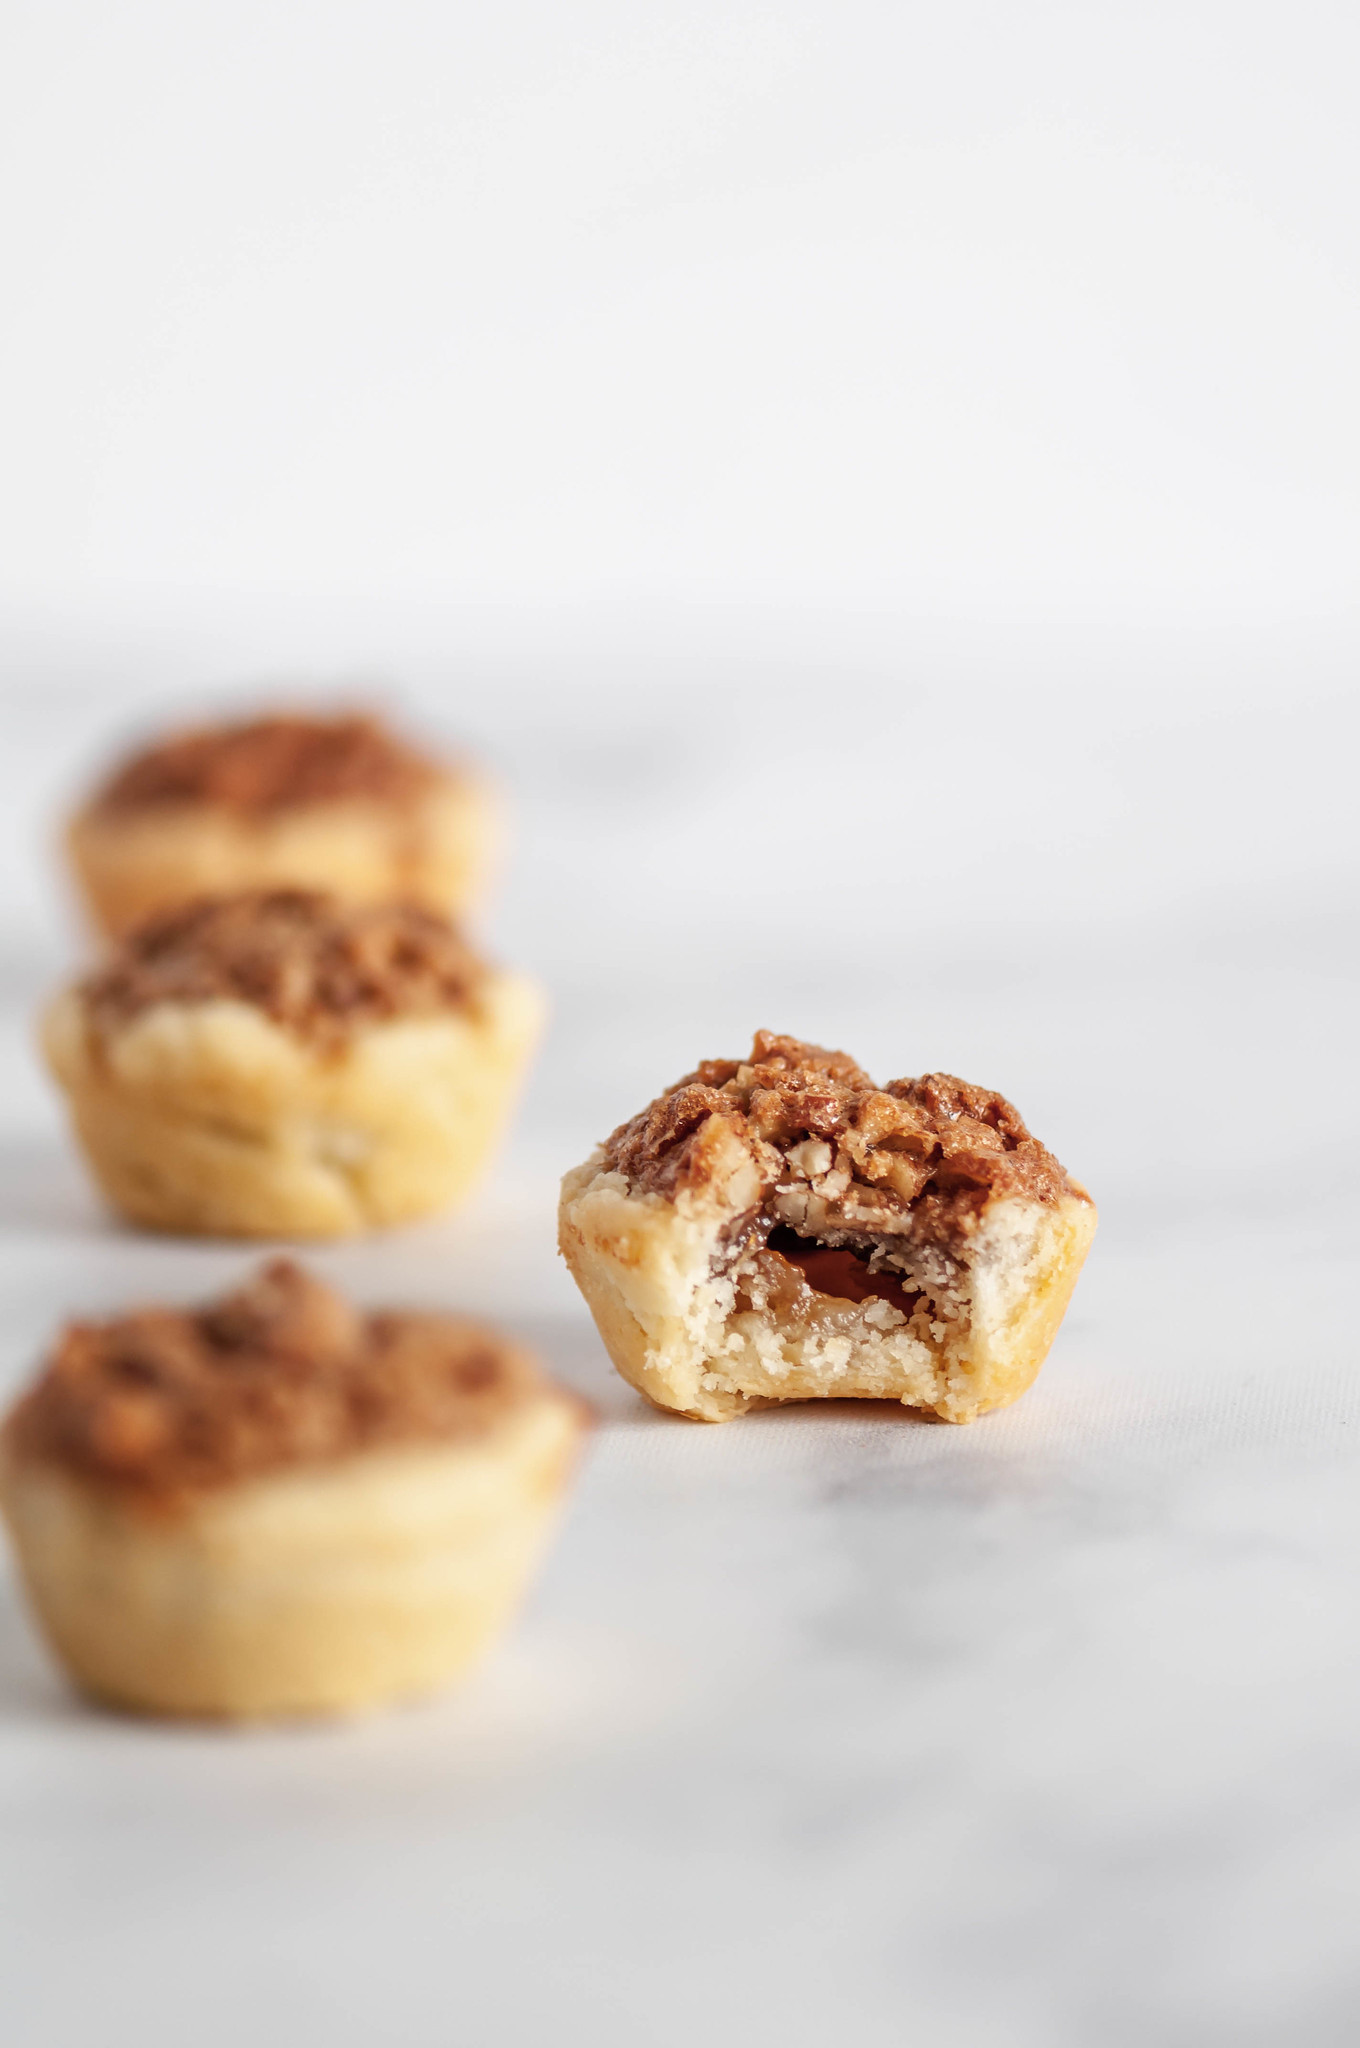 Mini Pecan Pies have all the traditional flavor of a traditional pecan pie in mini form and without the corn syrup. Only 40 minutes from start to finish make these a simple and delicious option for your Thanksgiving dessert table.